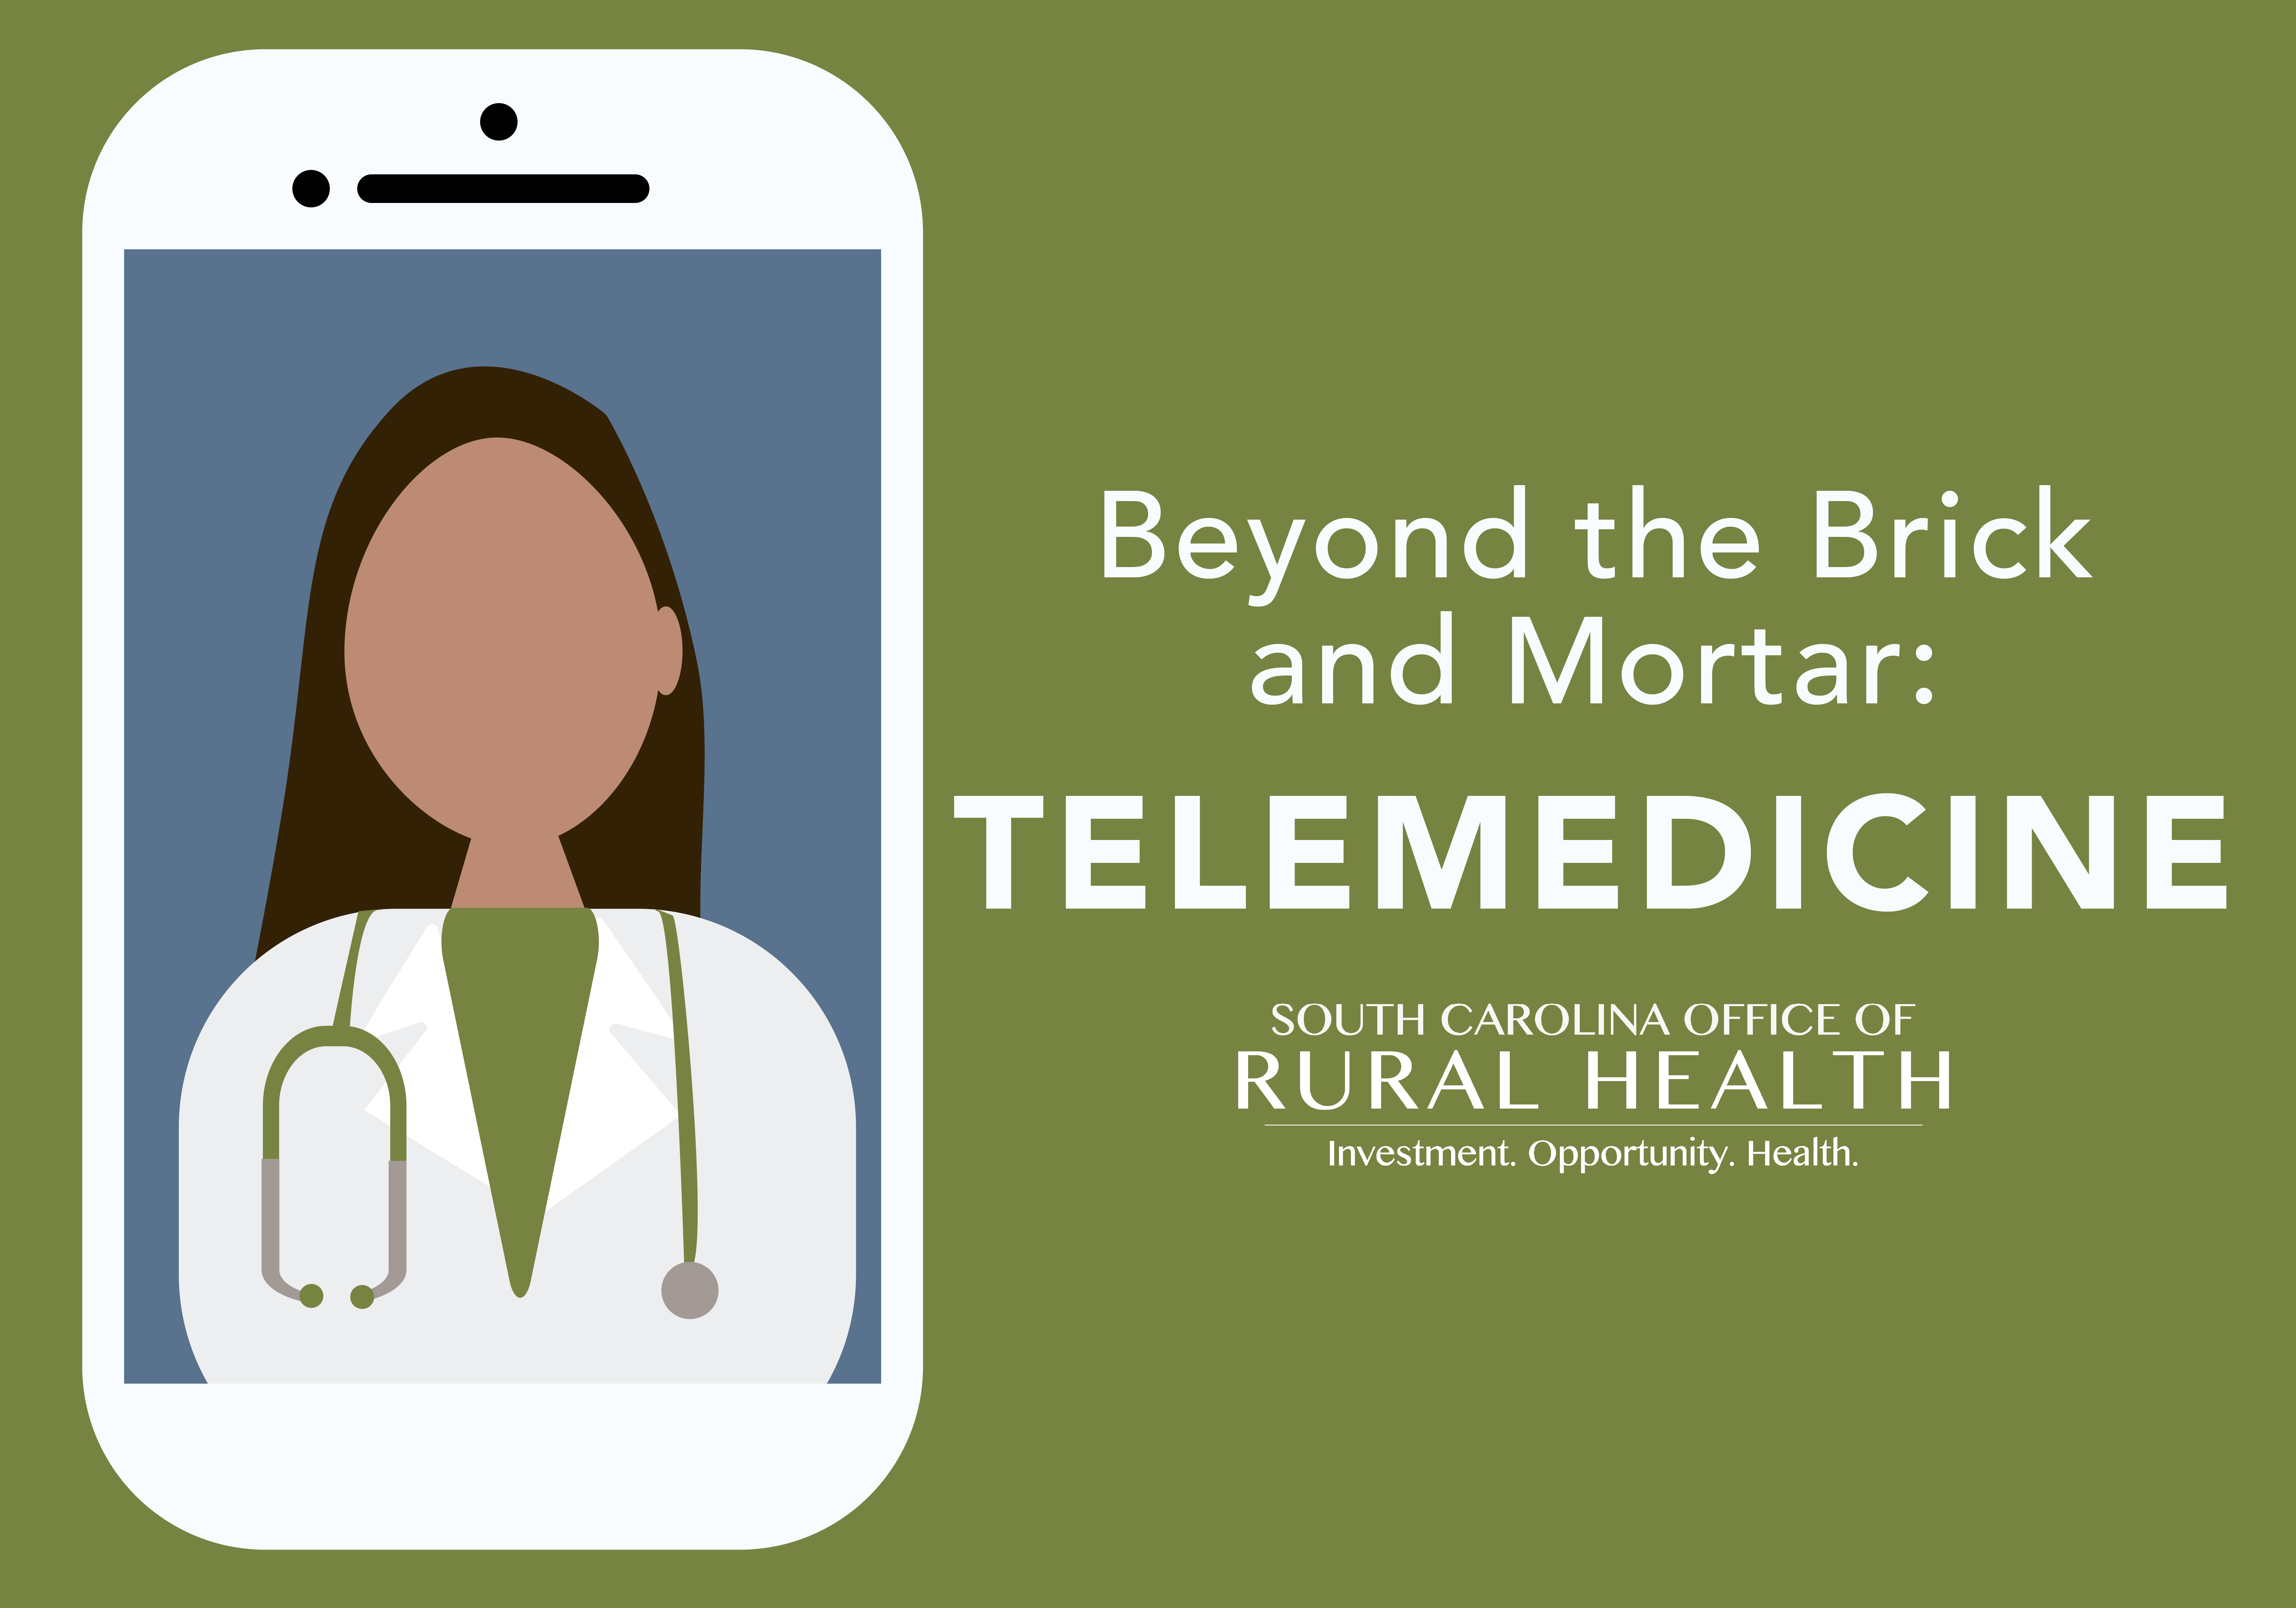 Beyond the Brick and Mortar: Telemedicine